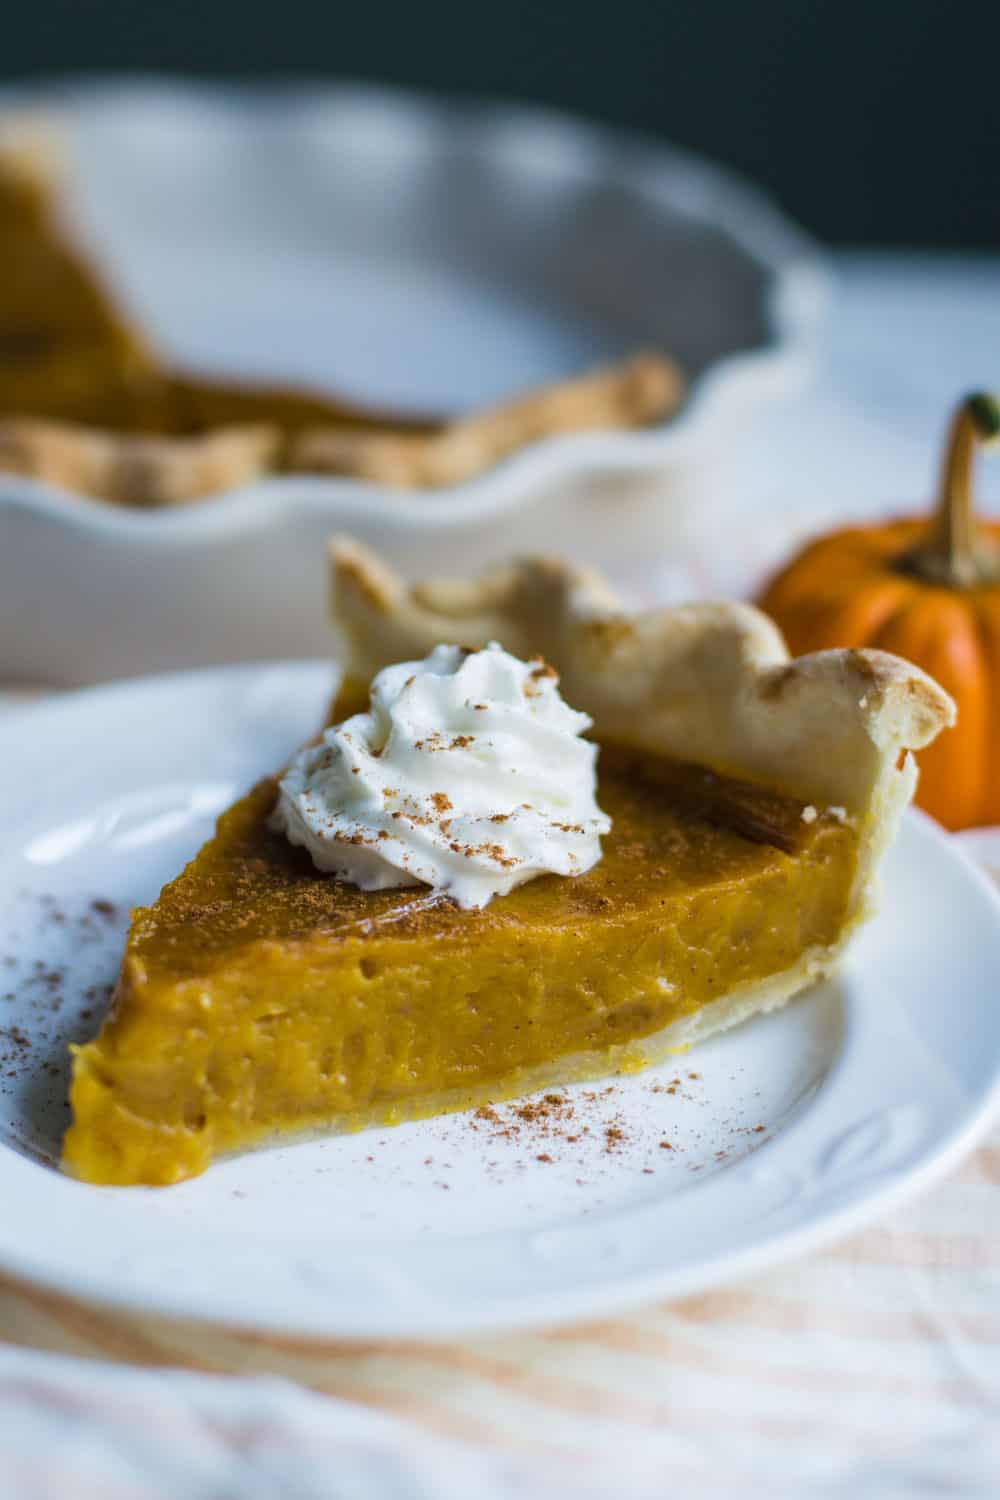 Vegan pumpkin pie + 15 Farmers market recipes to try this November! Delicious, autumn recipes made with fresh, seasonal produce from your local farmers market or CSA bin. Eat local!